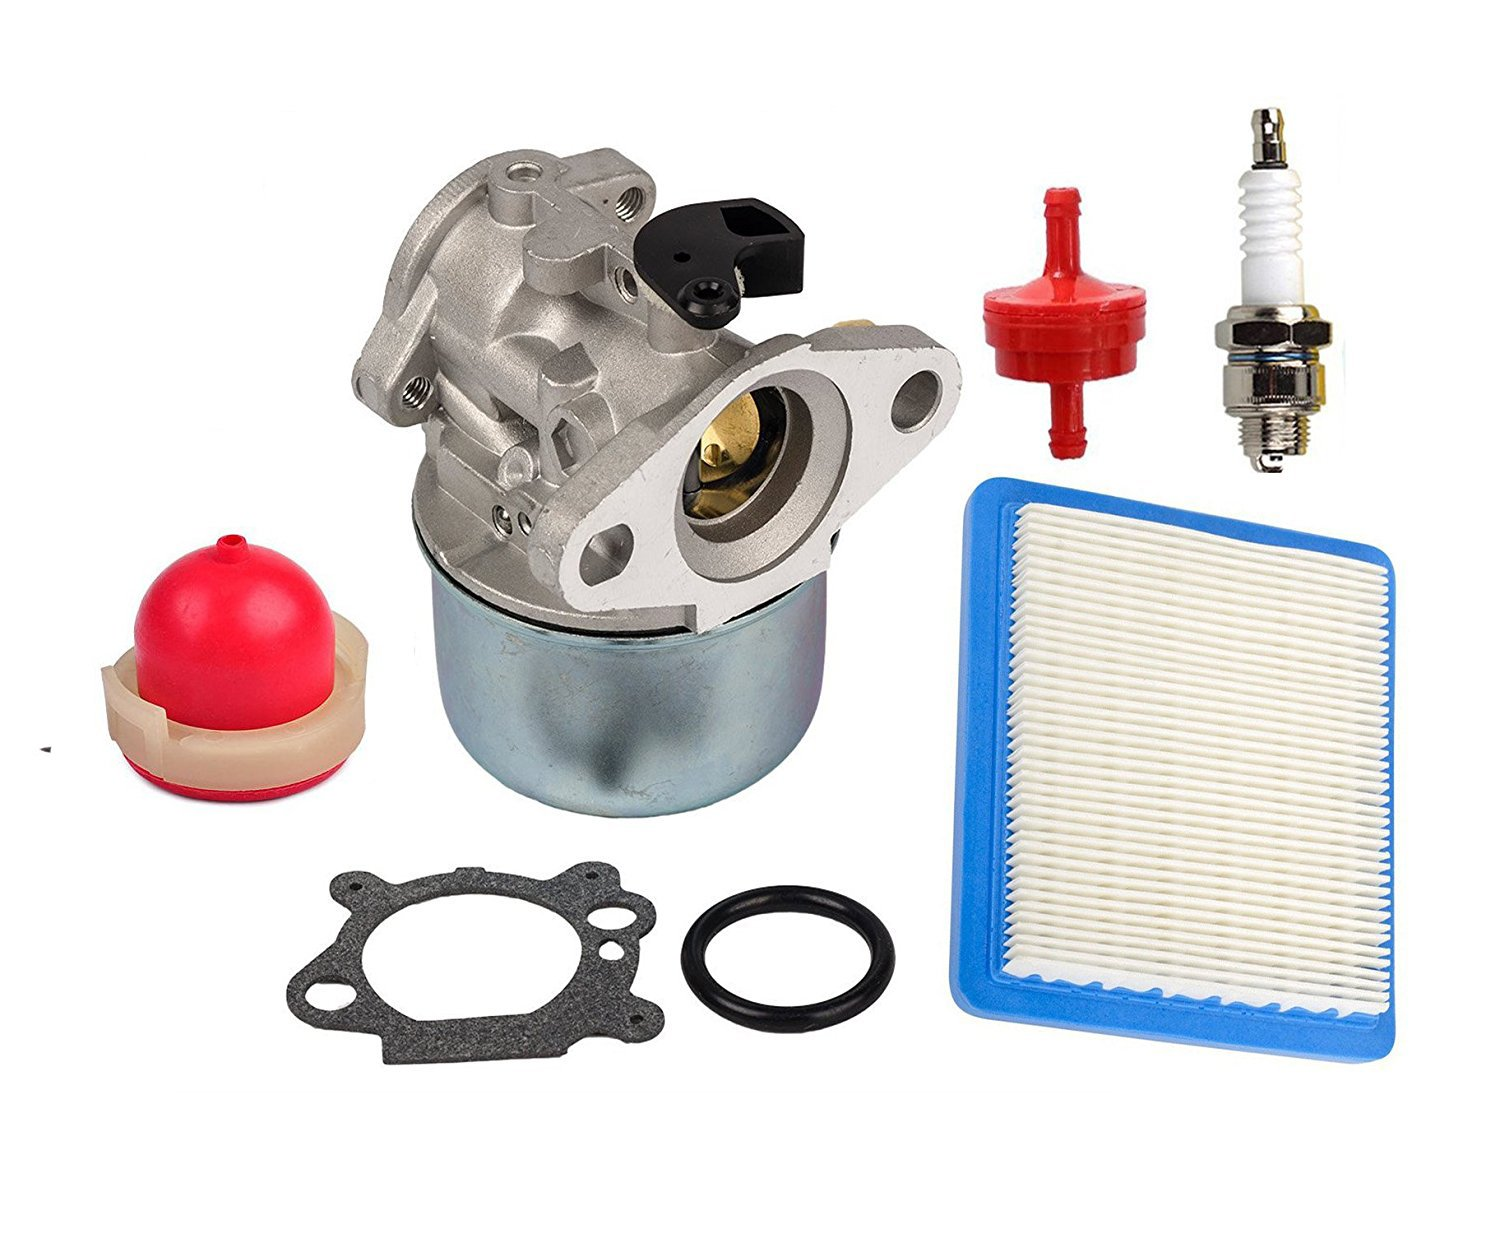 HIFROM 799868 Carburetor Carb Kit With 491588 Air Filter 694395 Primer Bulb 298090S Fuel Filter for Briggs & Stratton 4 to 7HP Engines